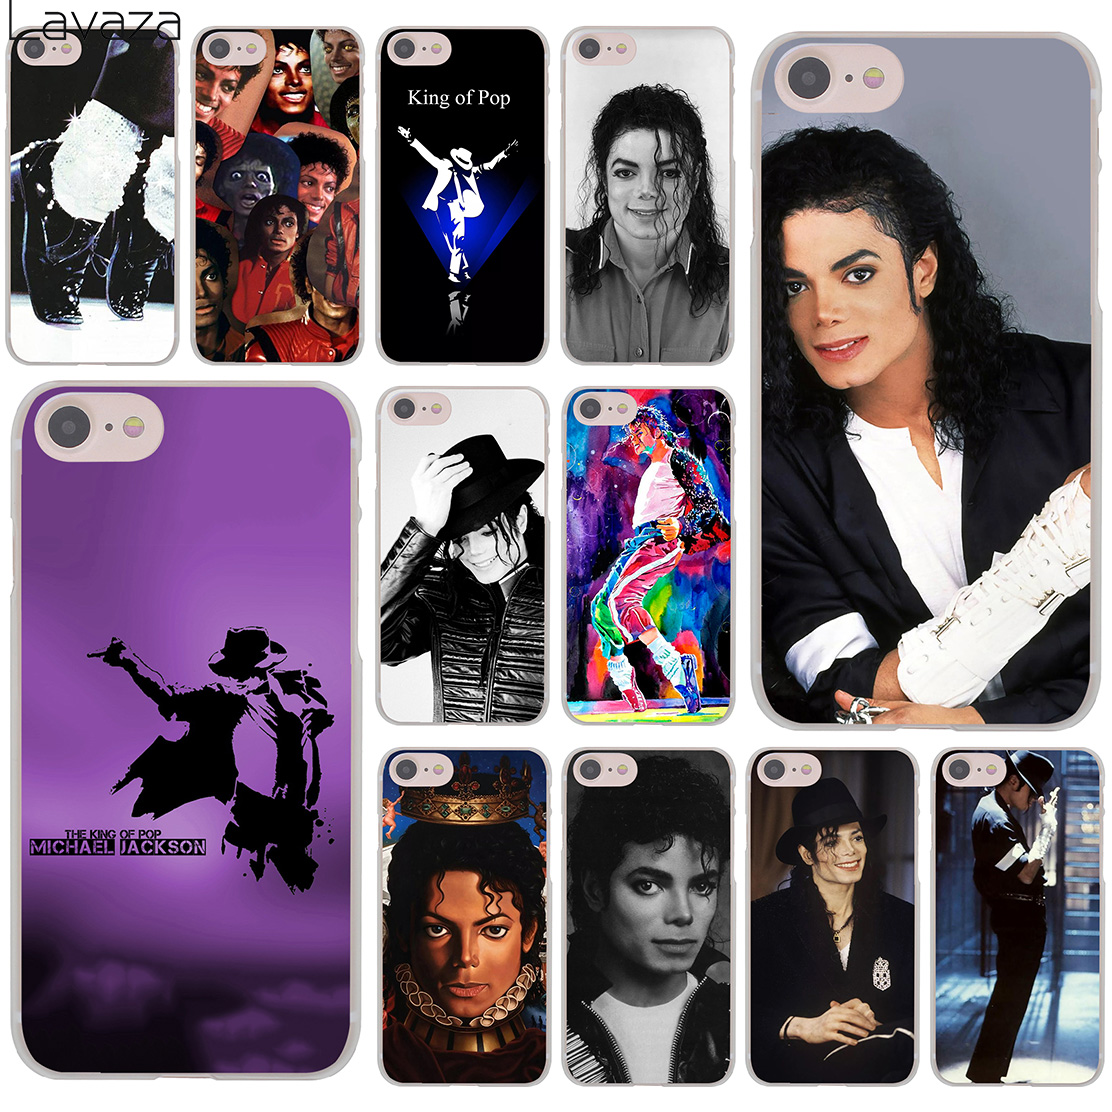 کیف رقص Lavaza Michael jackson Music Cover Case for iPhone XR X 11 Pro XS Max 8 7 6 6S 5 5S SE 4S 4 10